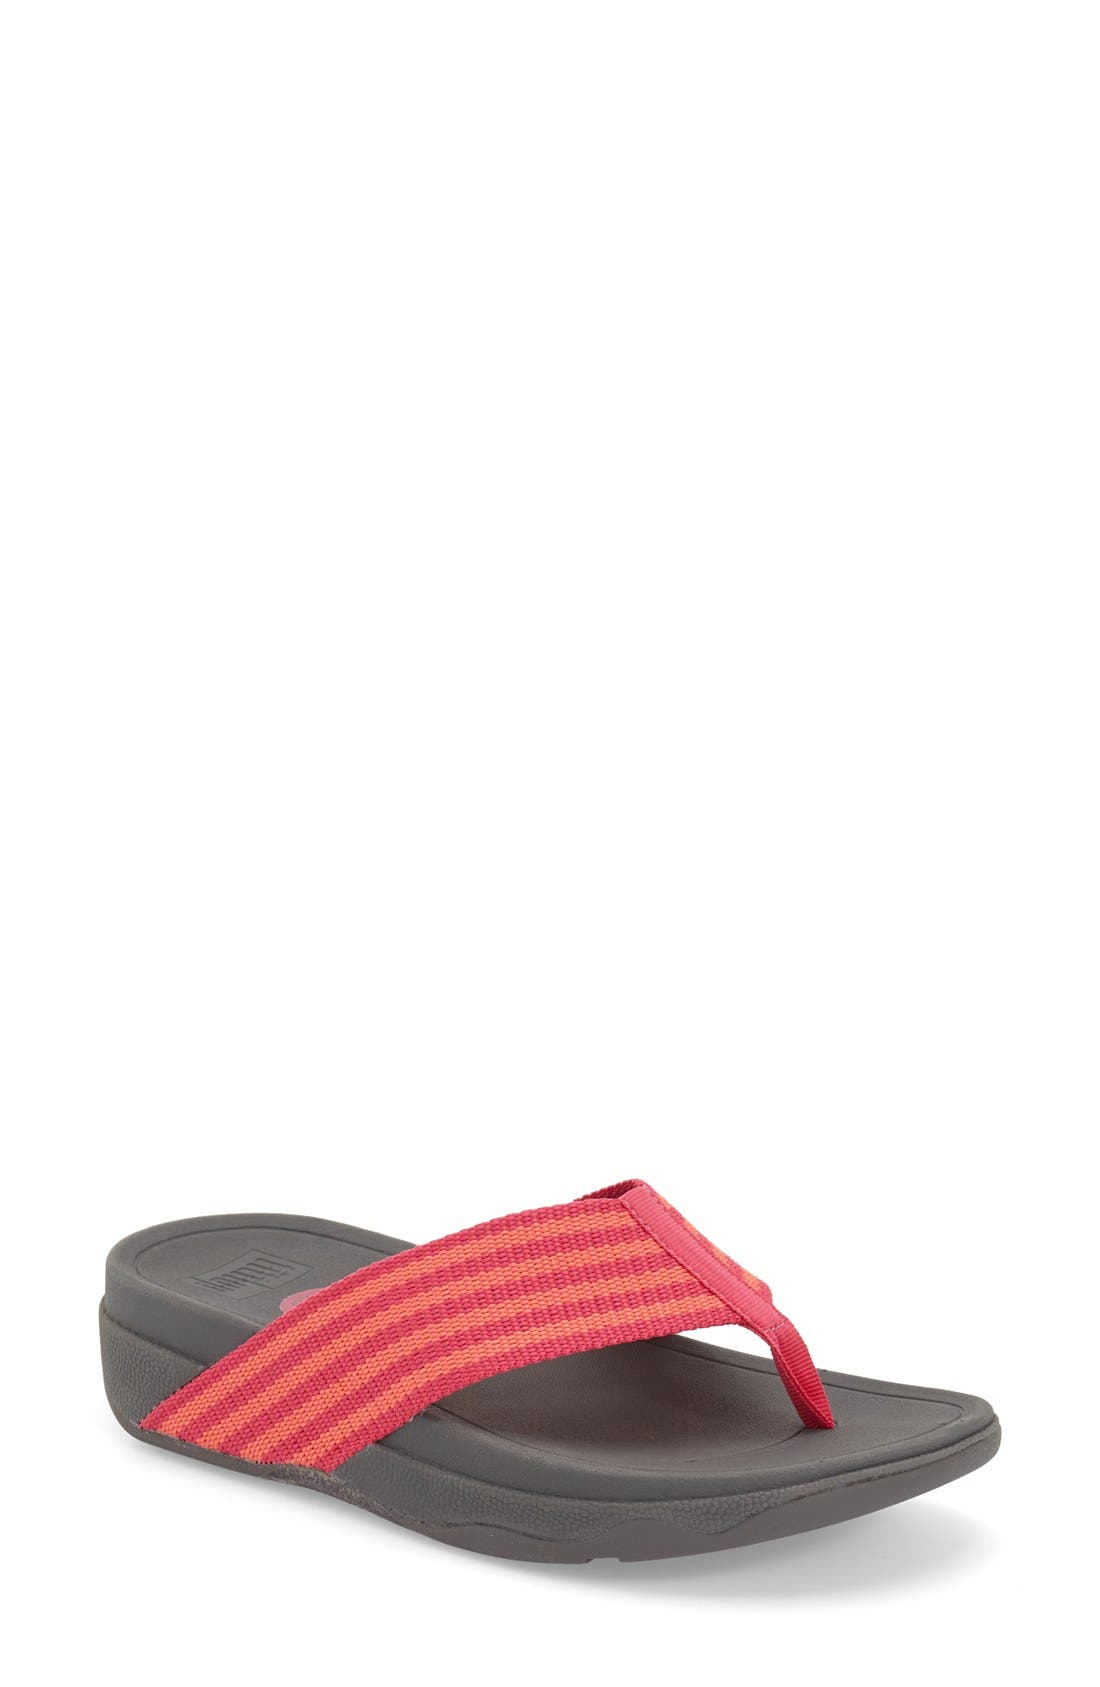 'Surfa' Thong Sandal,                             Main thumbnail 9, color,